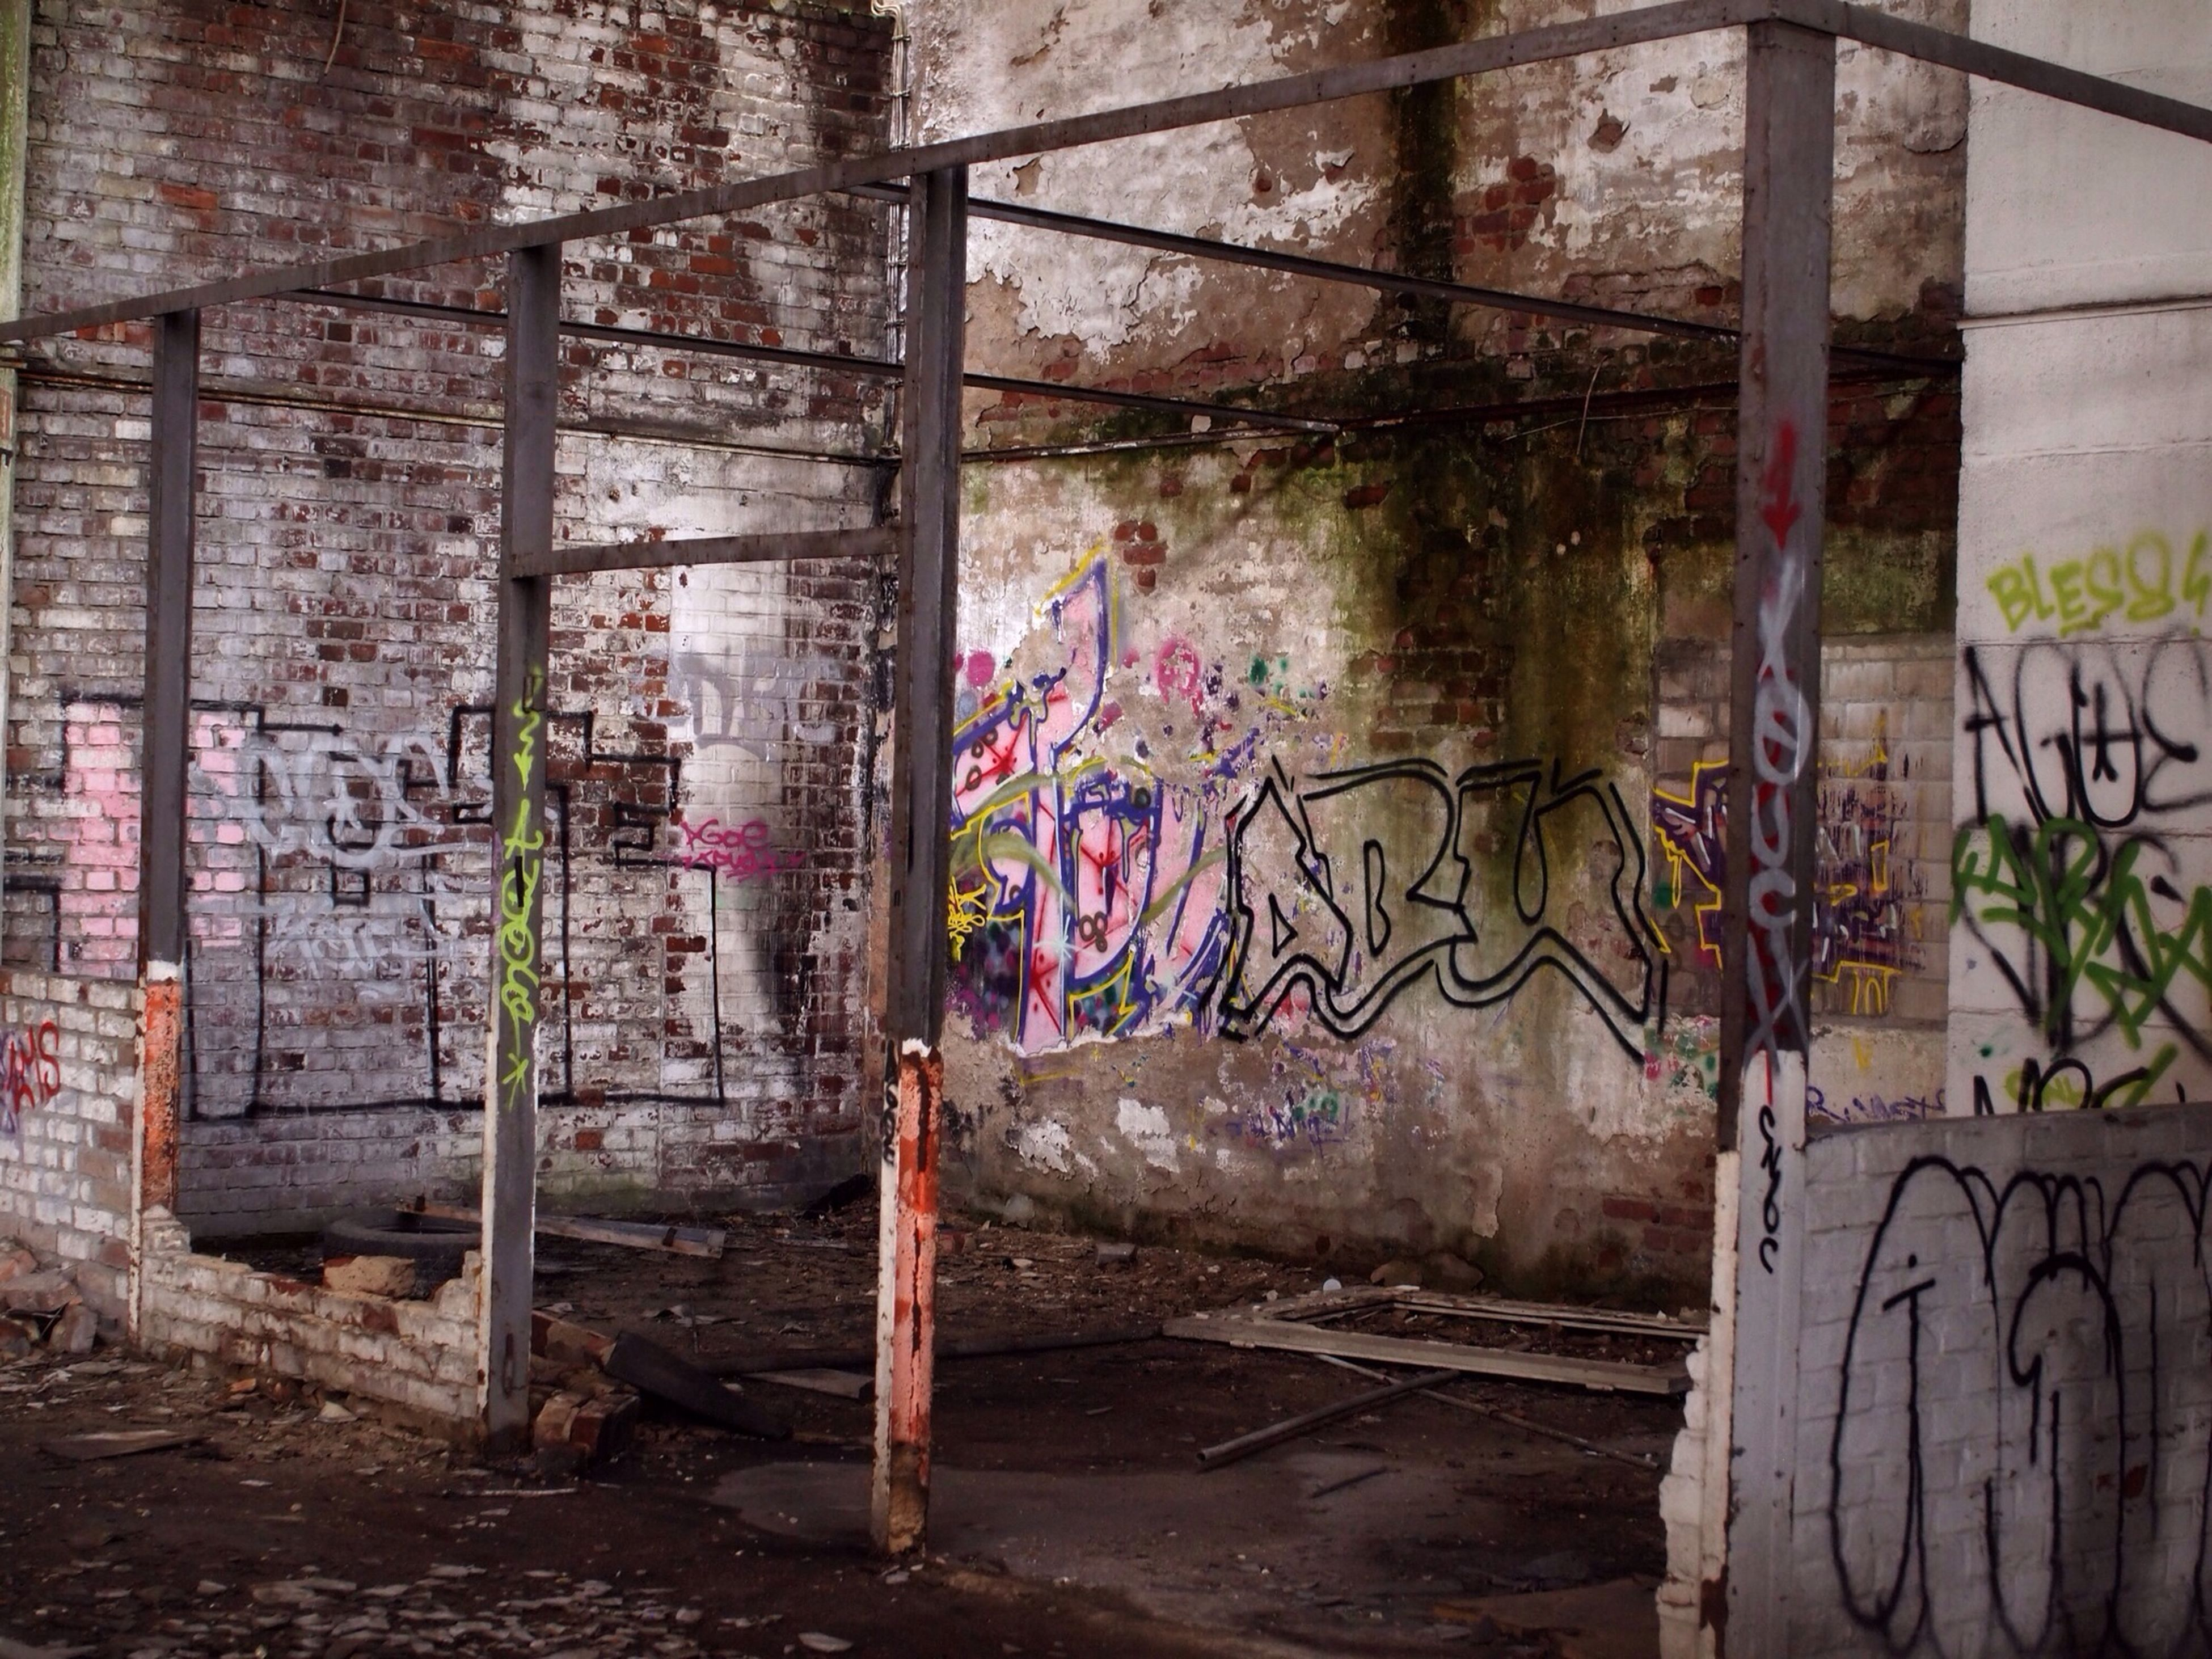 graffiti, built structure, wall - building feature, architecture, abandoned, building exterior, damaged, old, obsolete, deterioration, weathered, wall, run-down, brick wall, window, messy, bad condition, day, art, no people